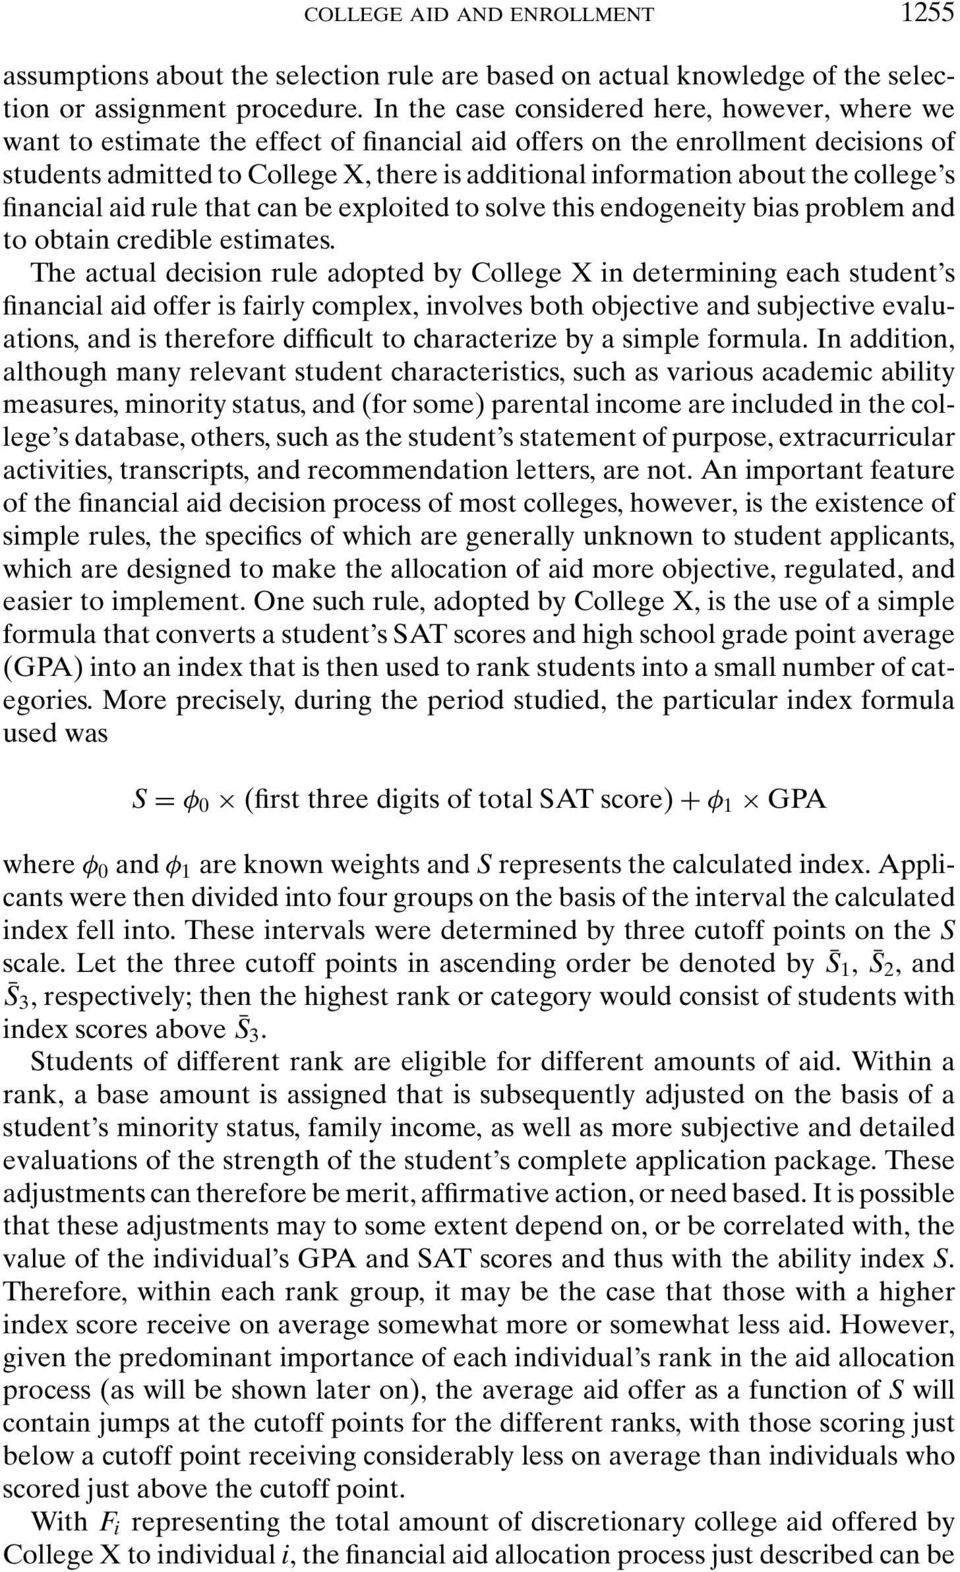 the college s financial aid rule that can be exploited to solve this endogeneity bias problem and to obtain credible estimates.